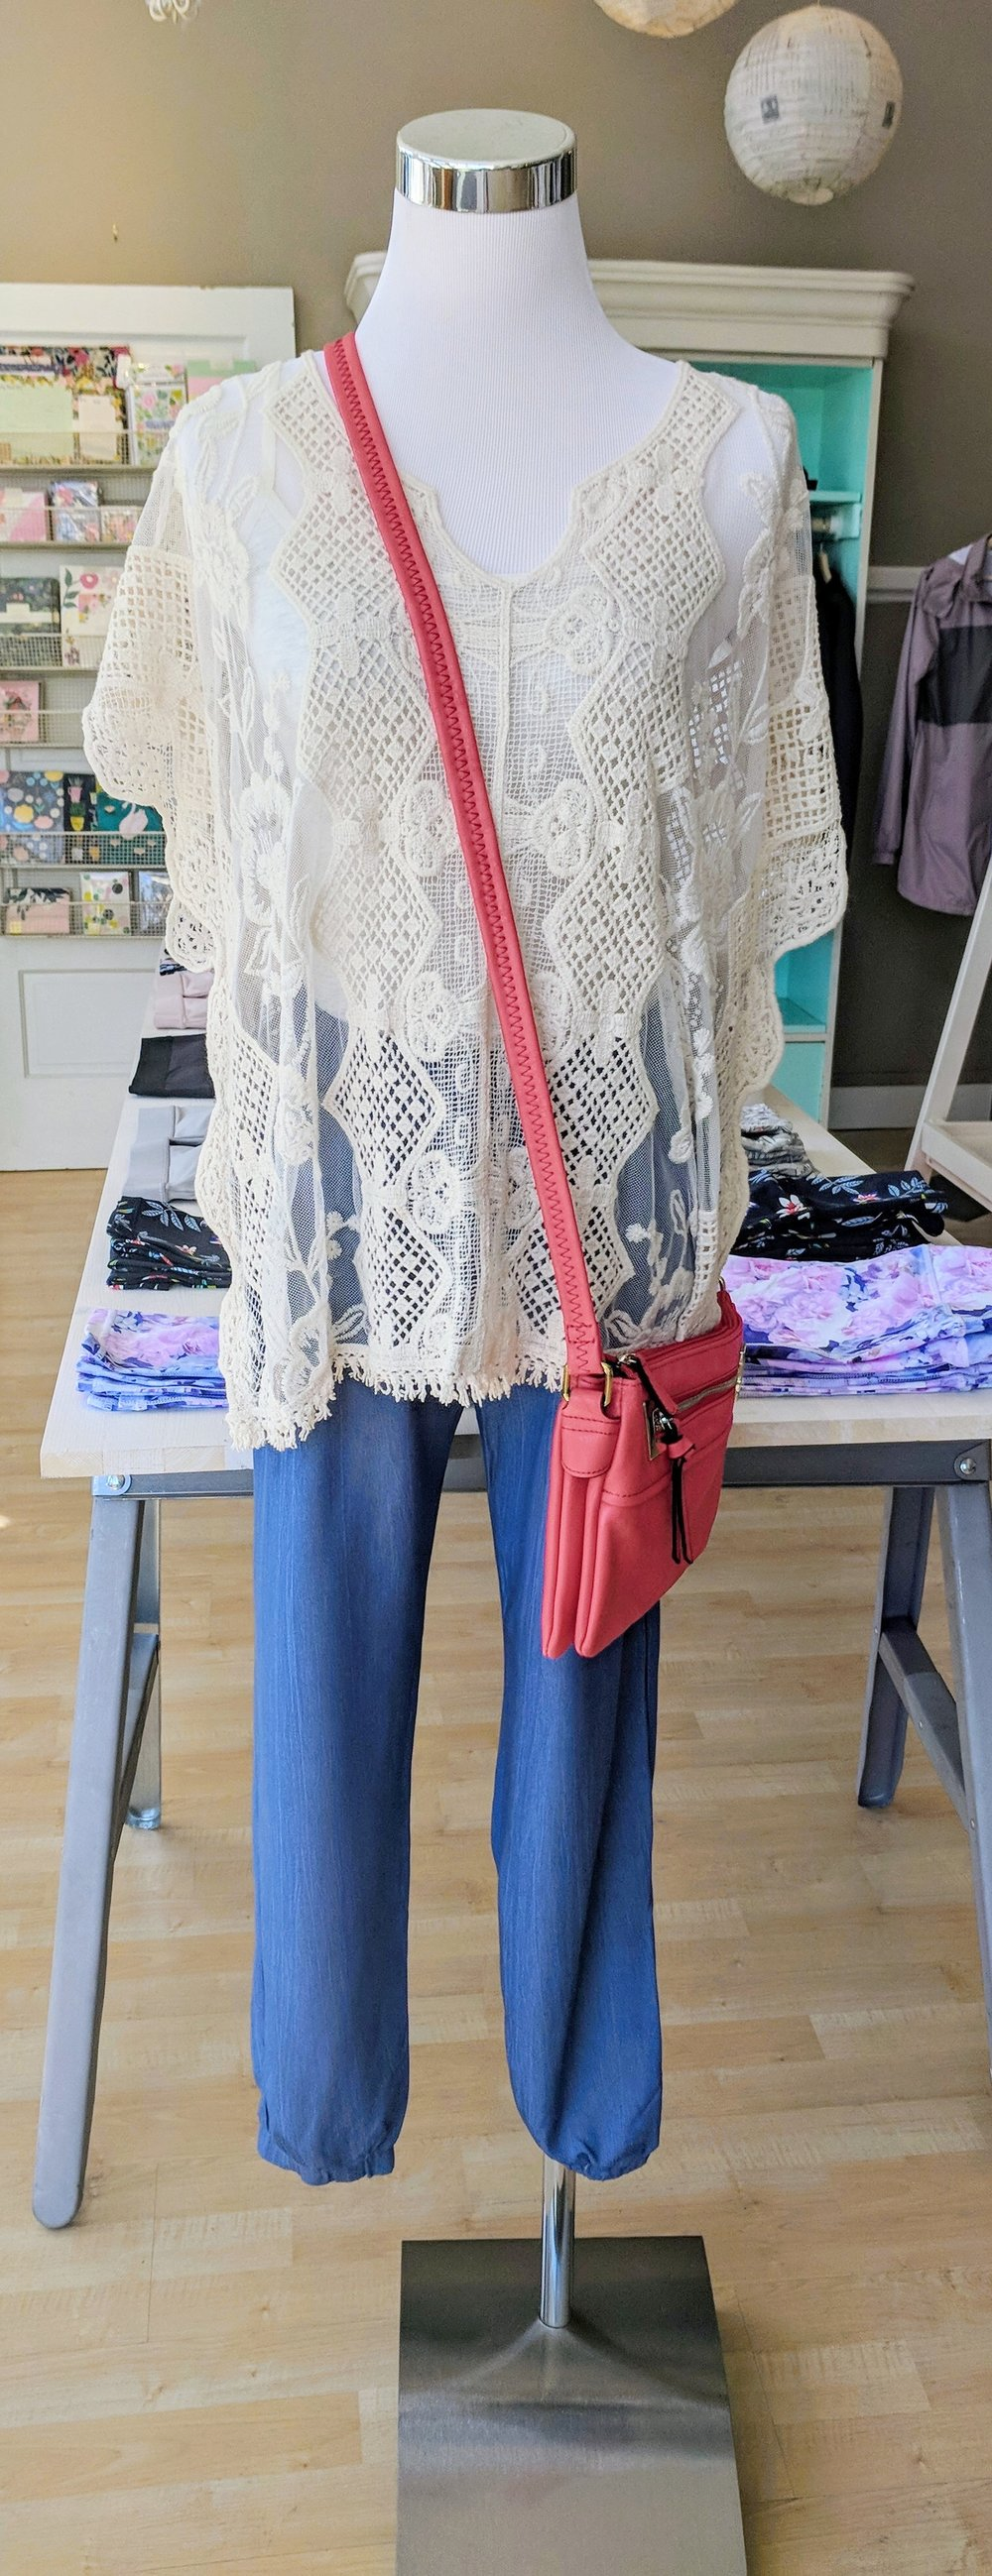 Embroidered Lace Boxy Top $38